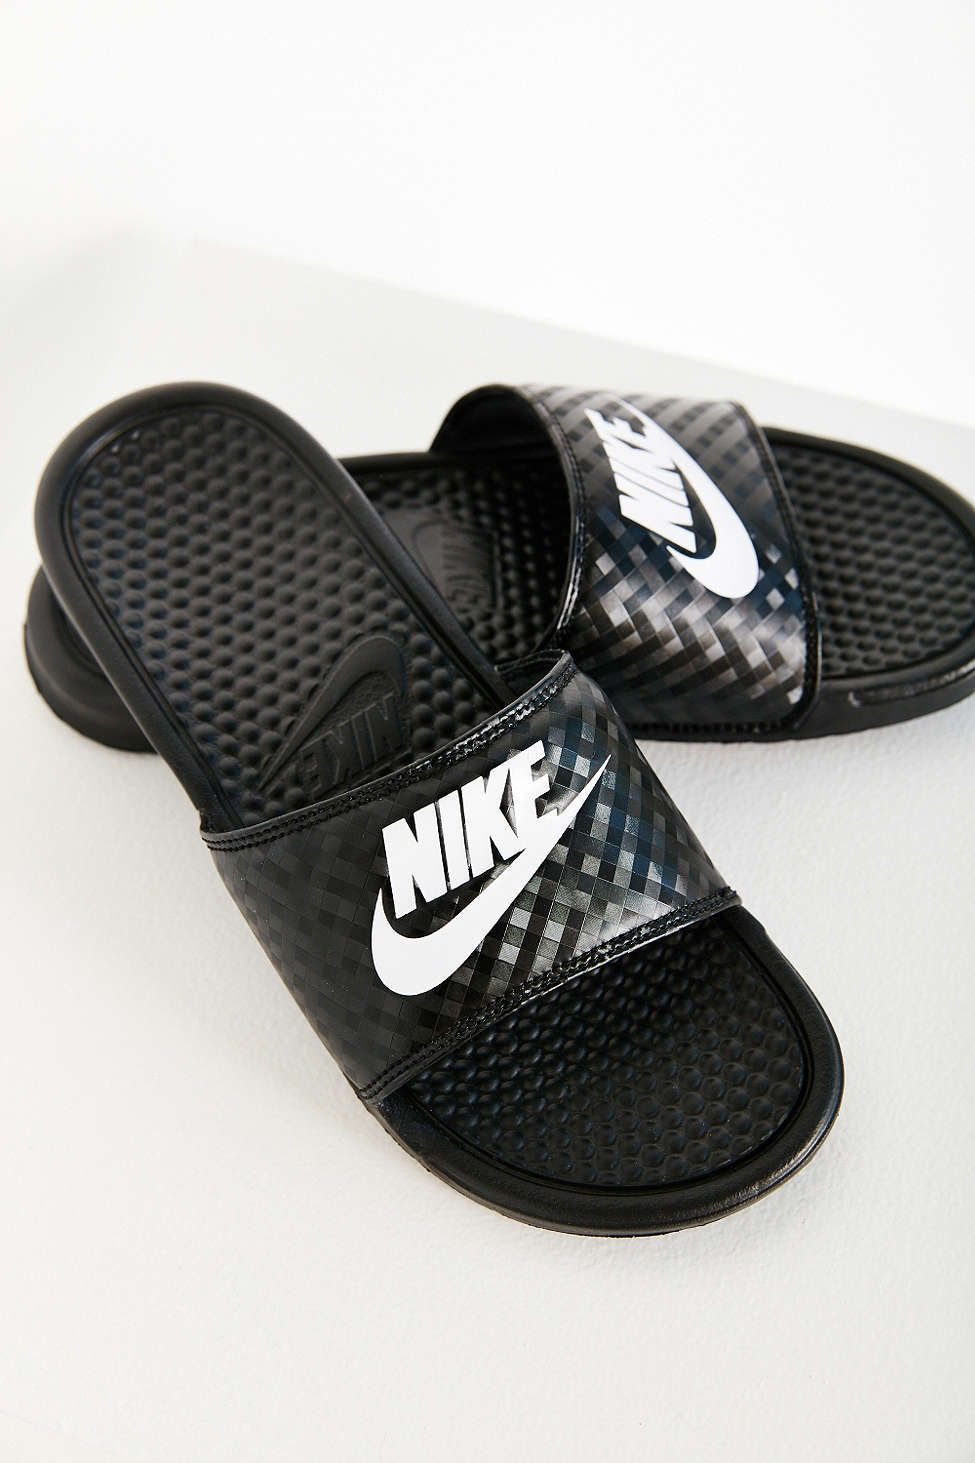 competitive price 17247 a0e20 Nike Benassi JDI Slide Sandal - Urban Outfitters